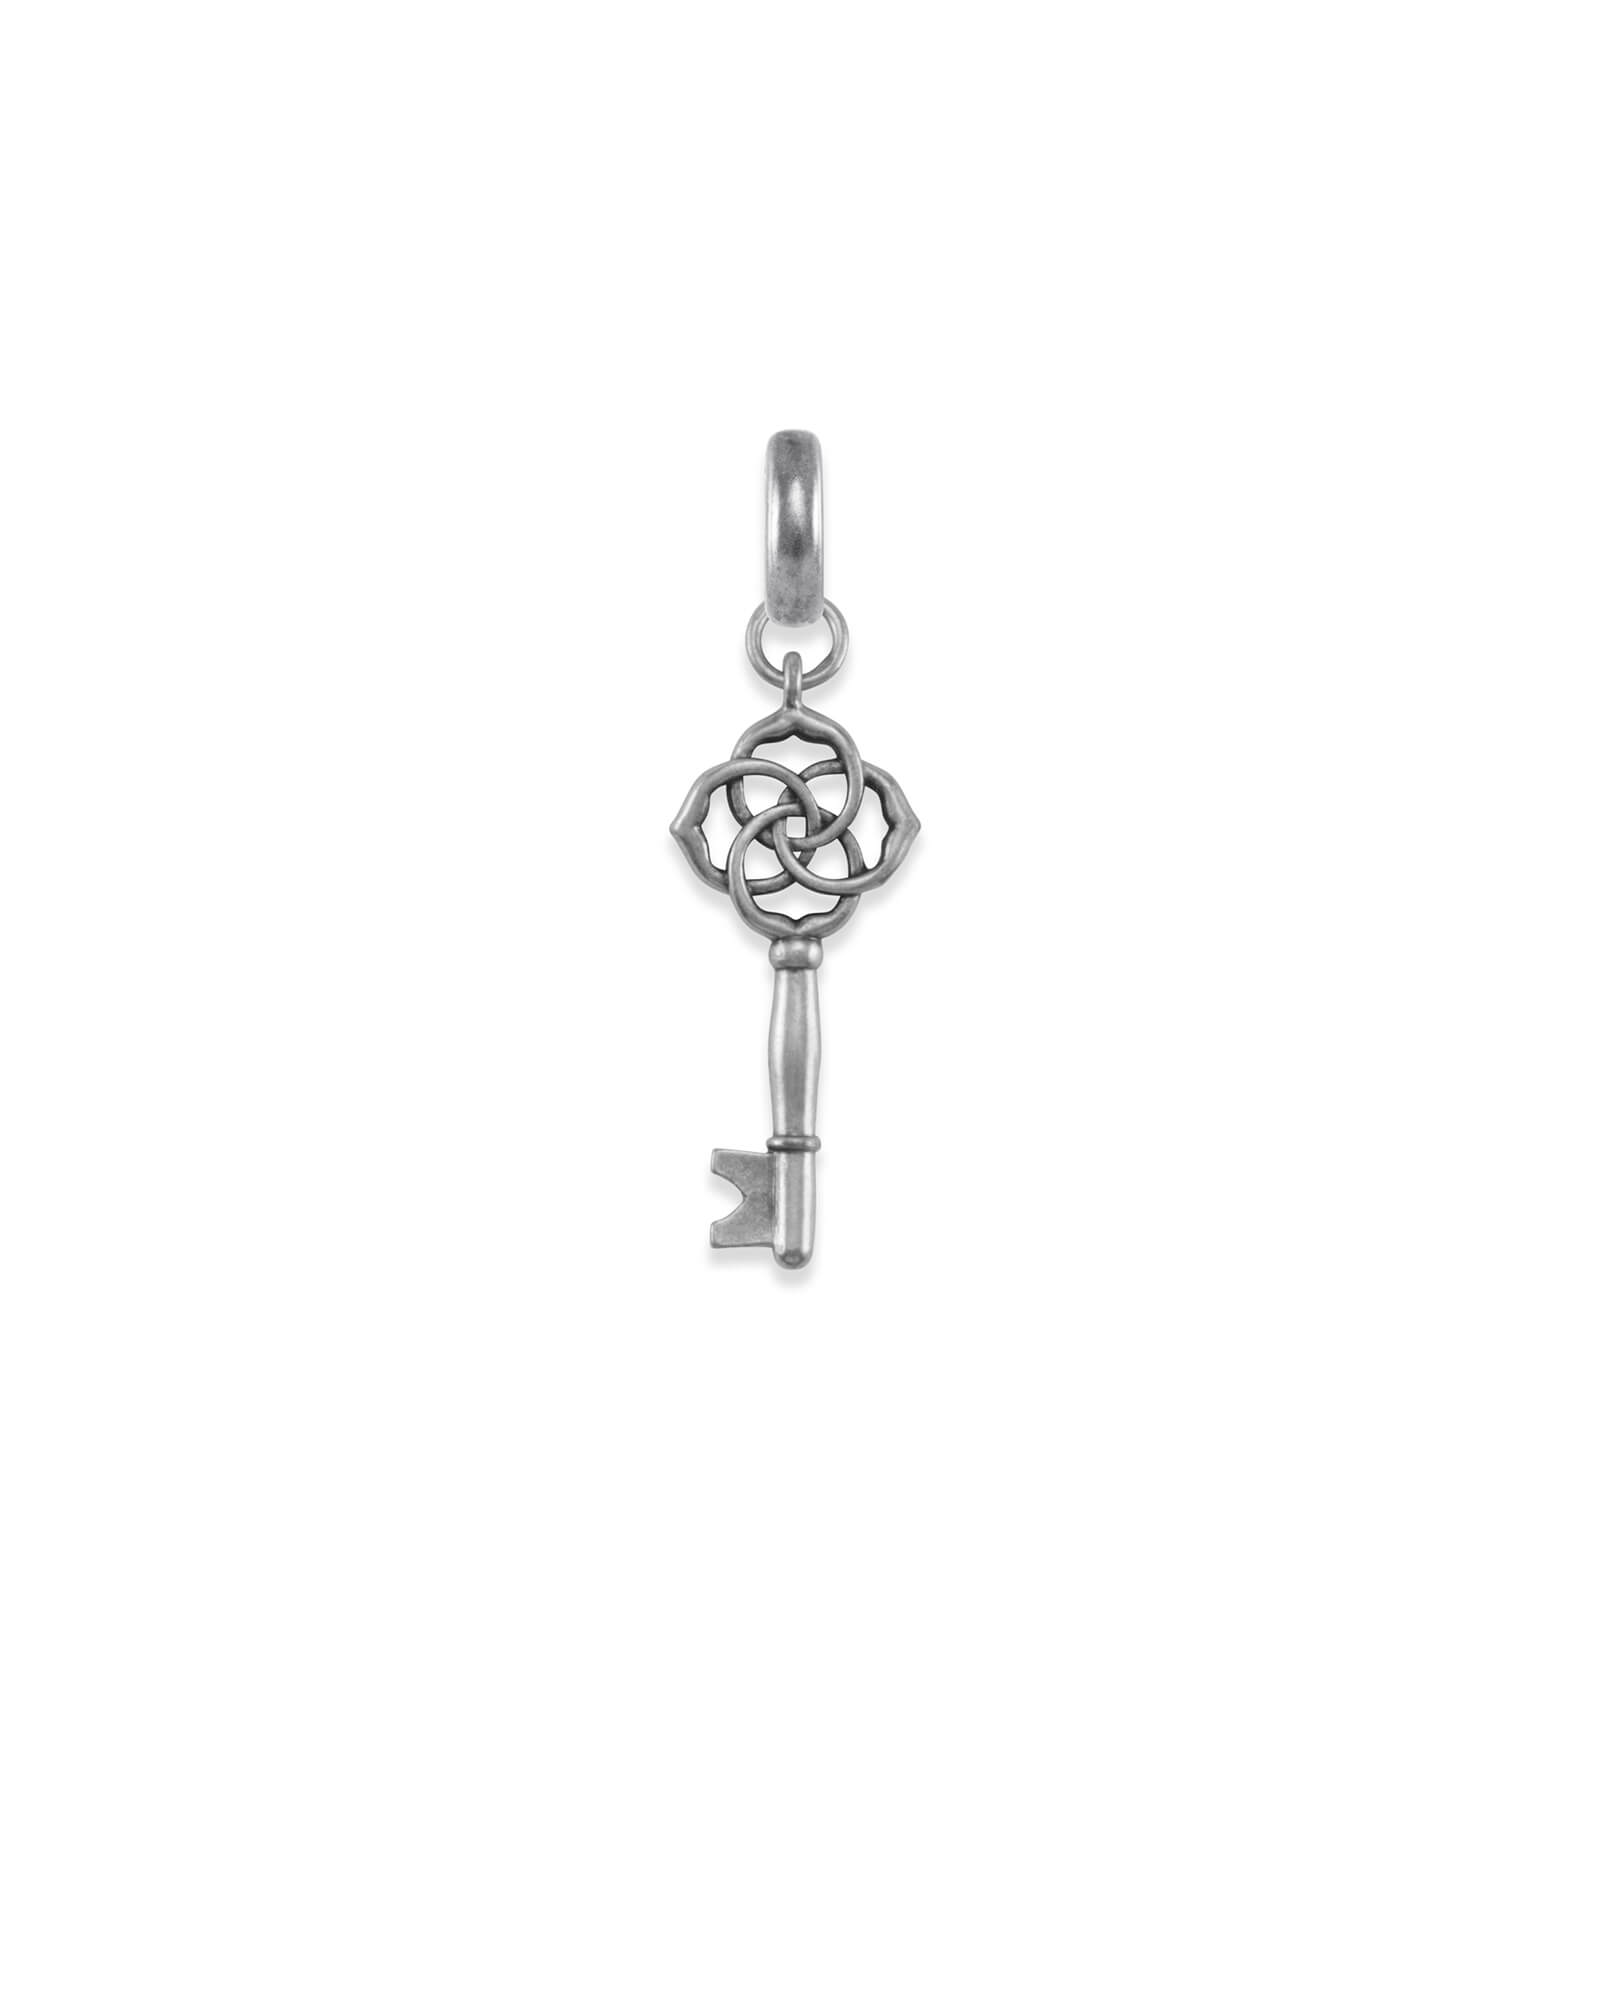 Home & Shelter Charm in Vintage Silver